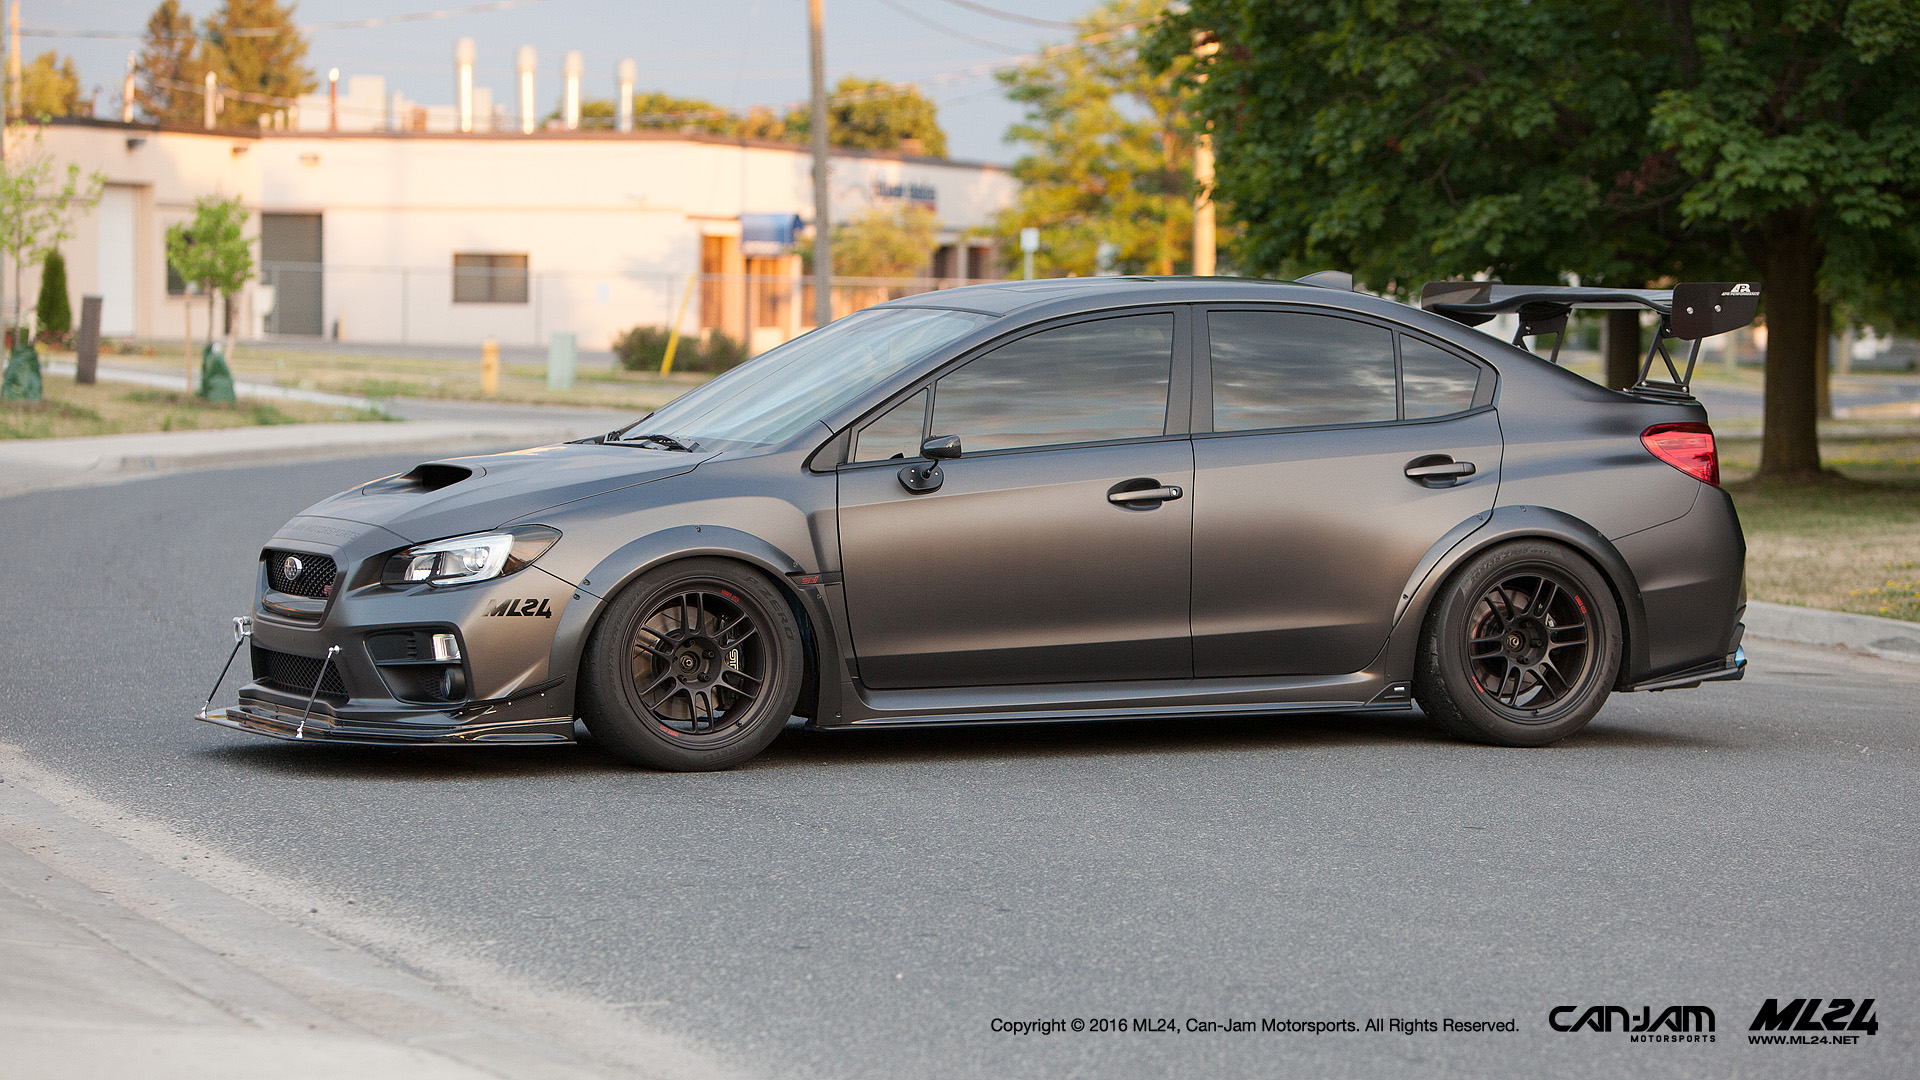 Ml24 Widebody Fender Flares Subaru Wrx 15 17 Ml 24 Wbff